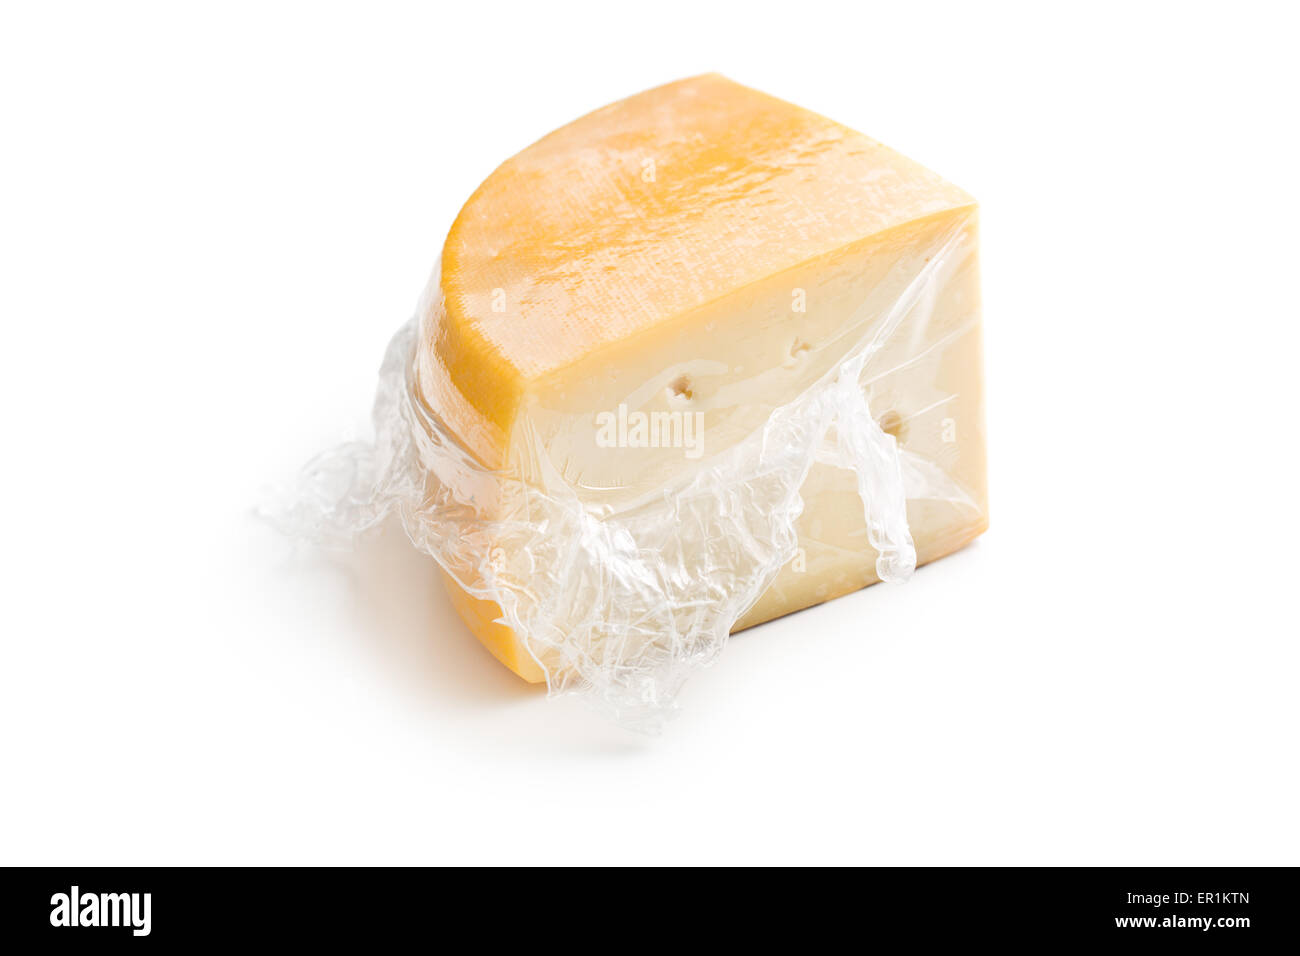 wrapped edam cheese on white background - Stock Image